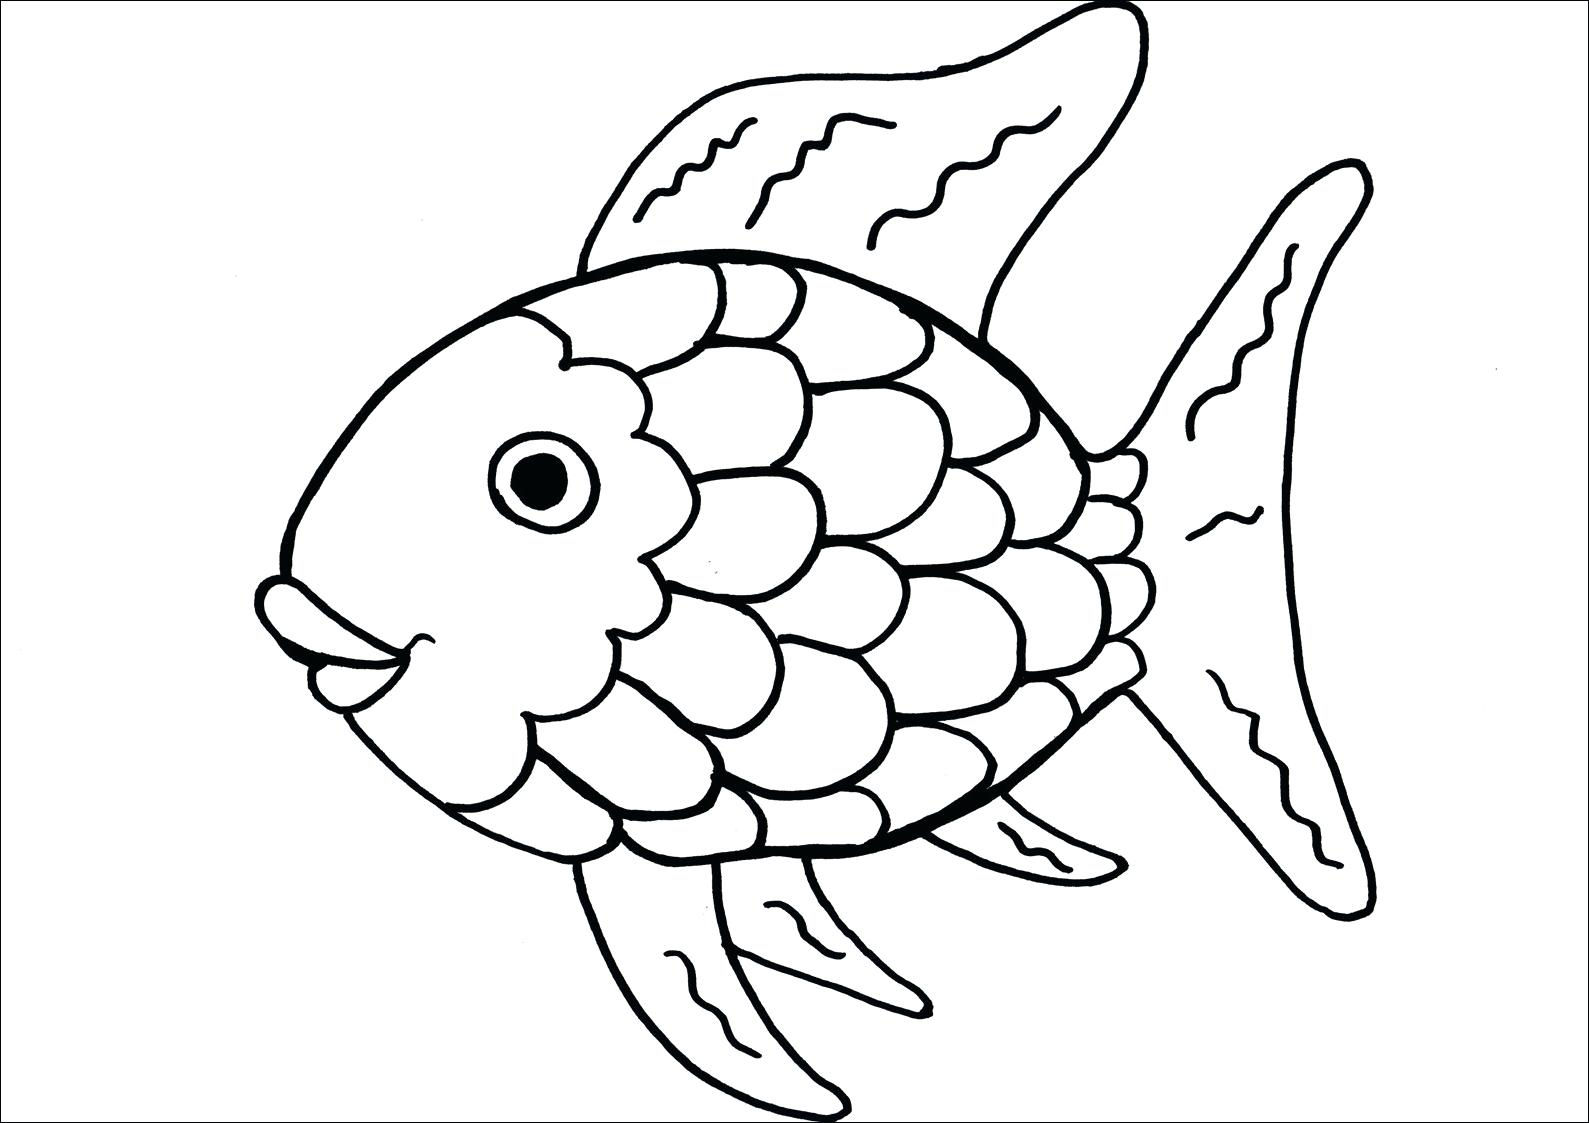 fish scales drawing at getdrawings com free for personal use fish